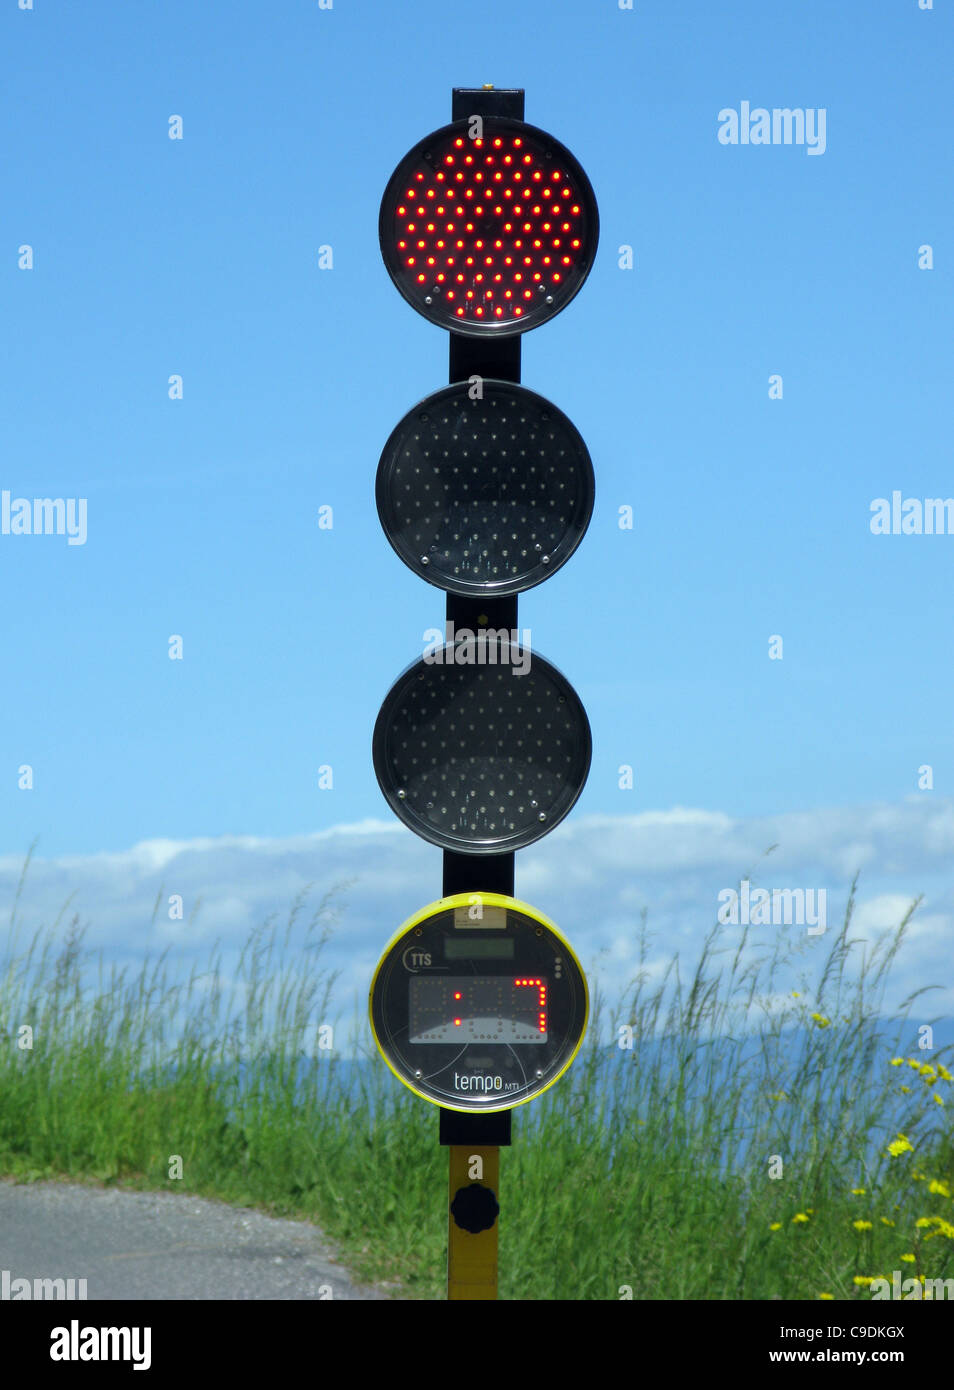 Traffic lights with countdown timer display to show when the light will change. - Stock Image